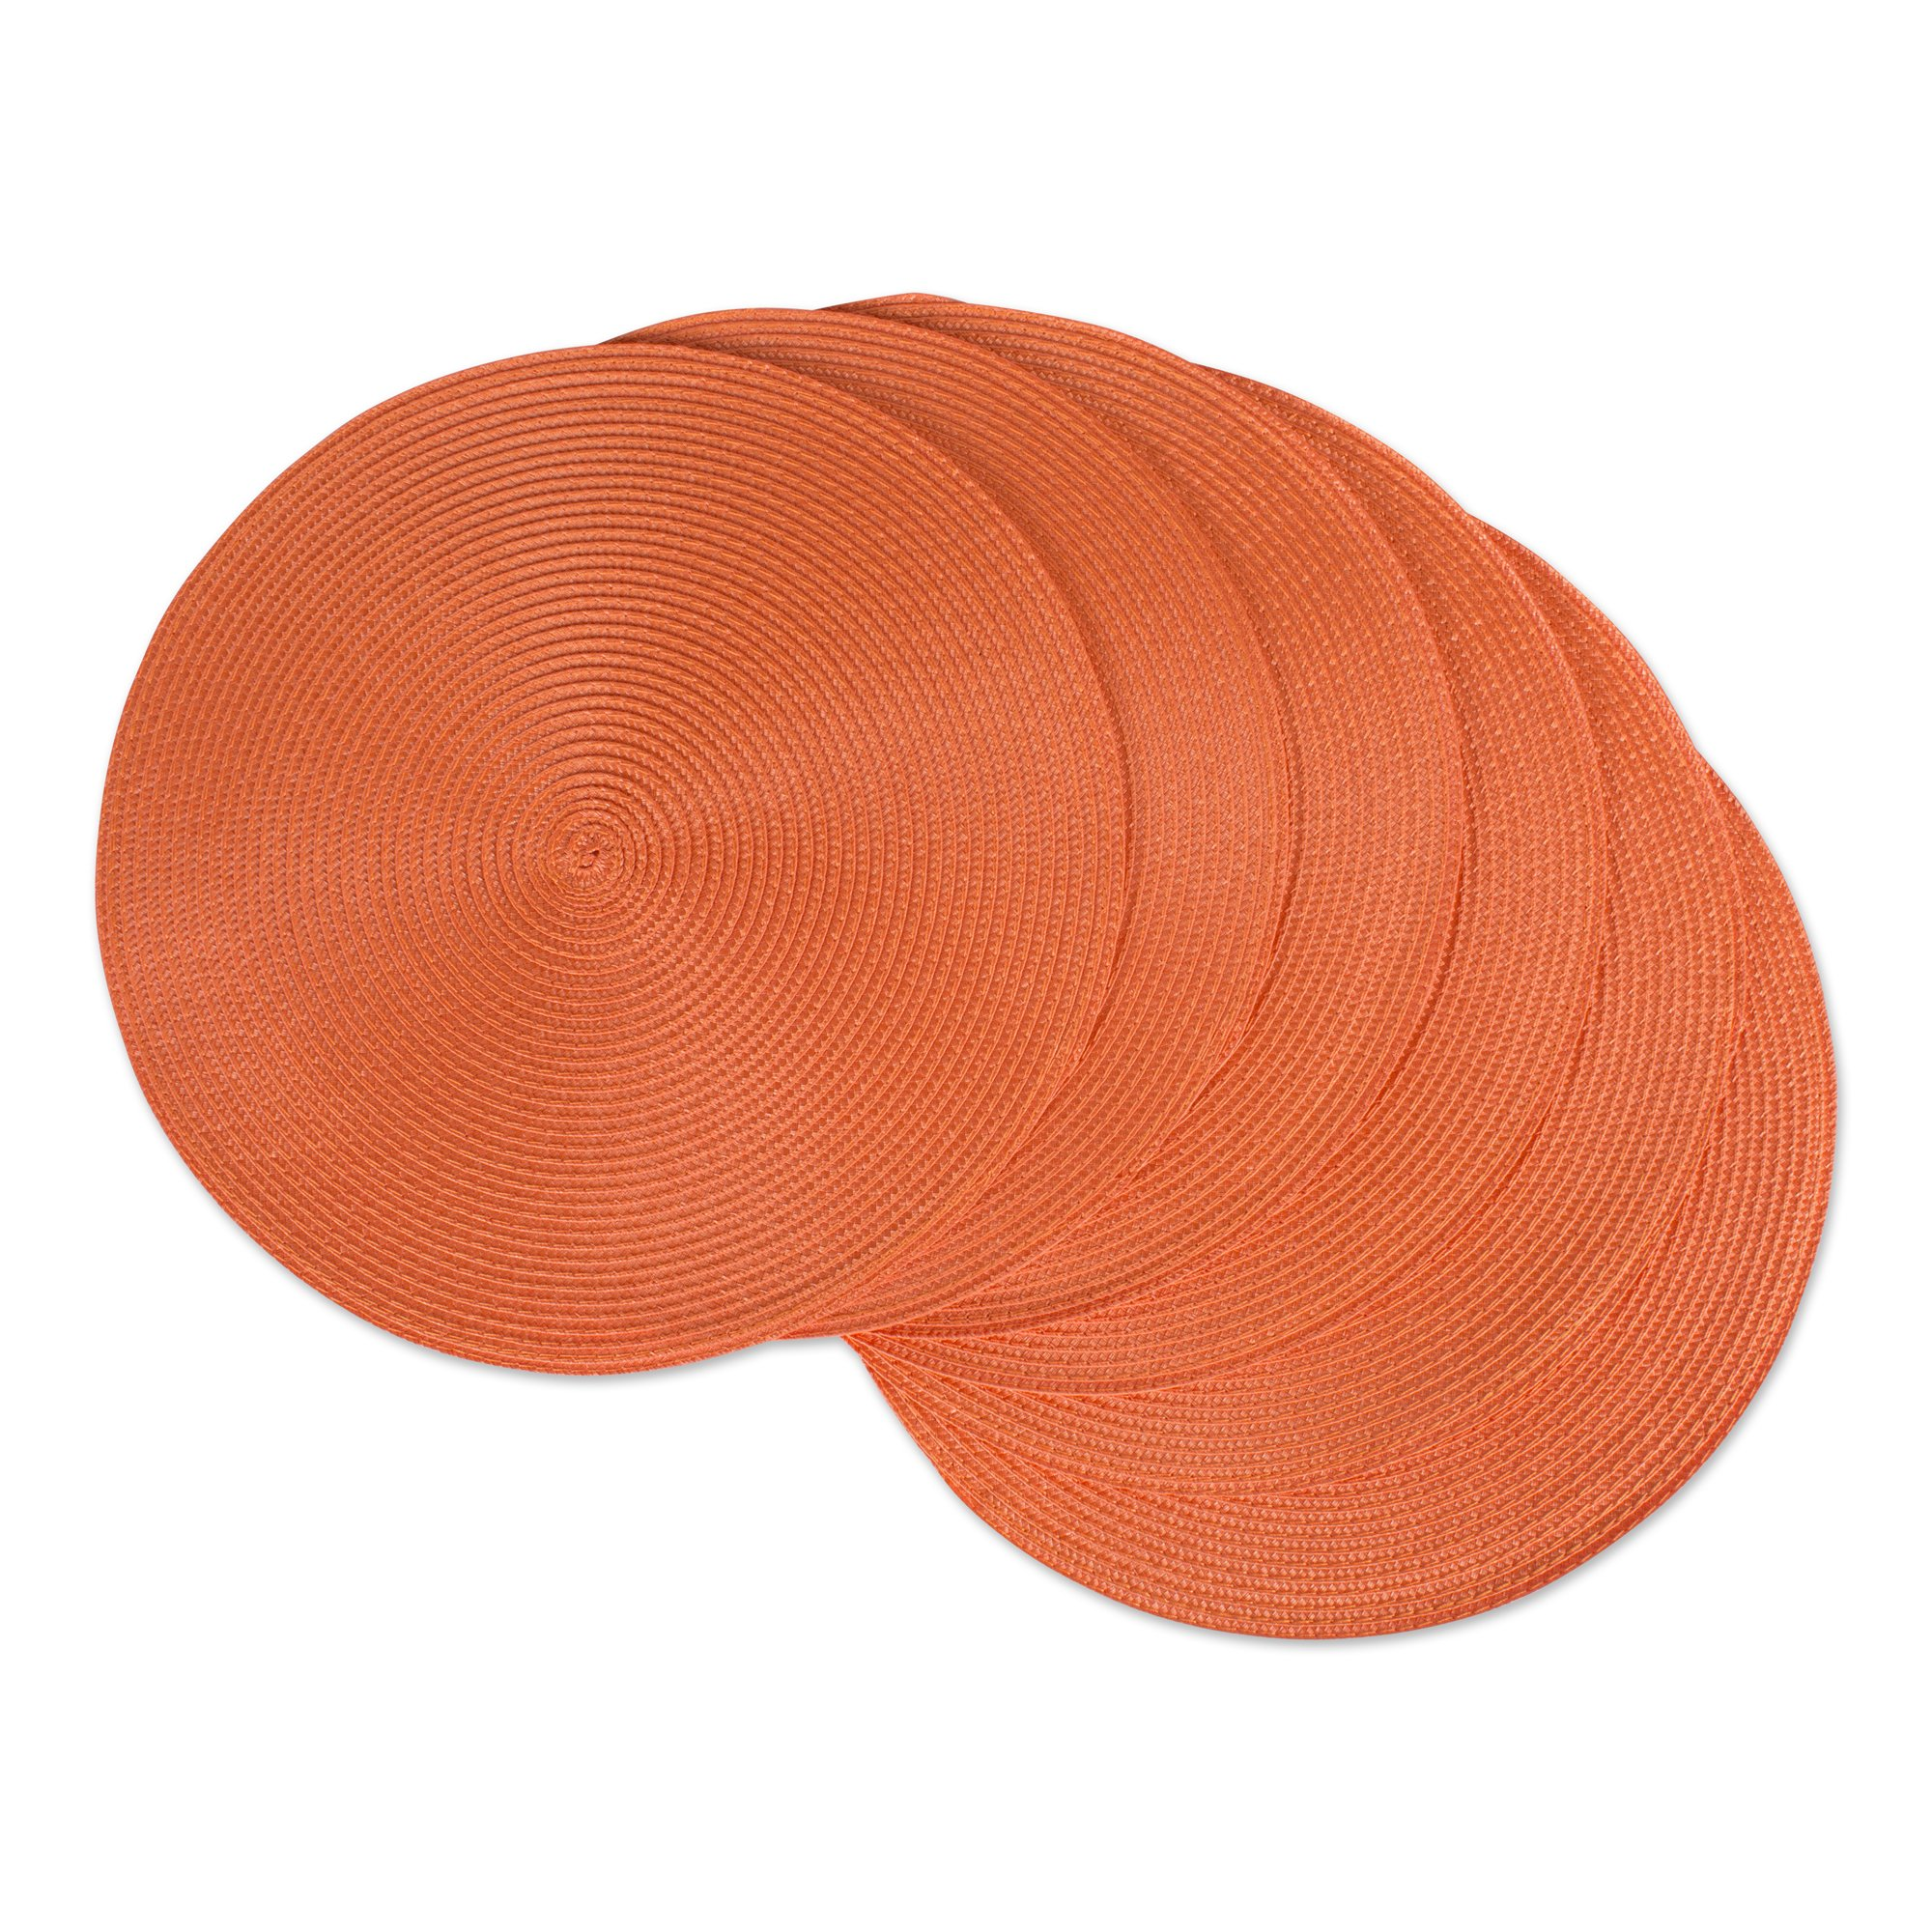 DII CAMZ33314 Round Woven Placemat Set Of 6 - Perfect For Fall Halloween Dinner Parties Bbqs And Everyday Use, Orange